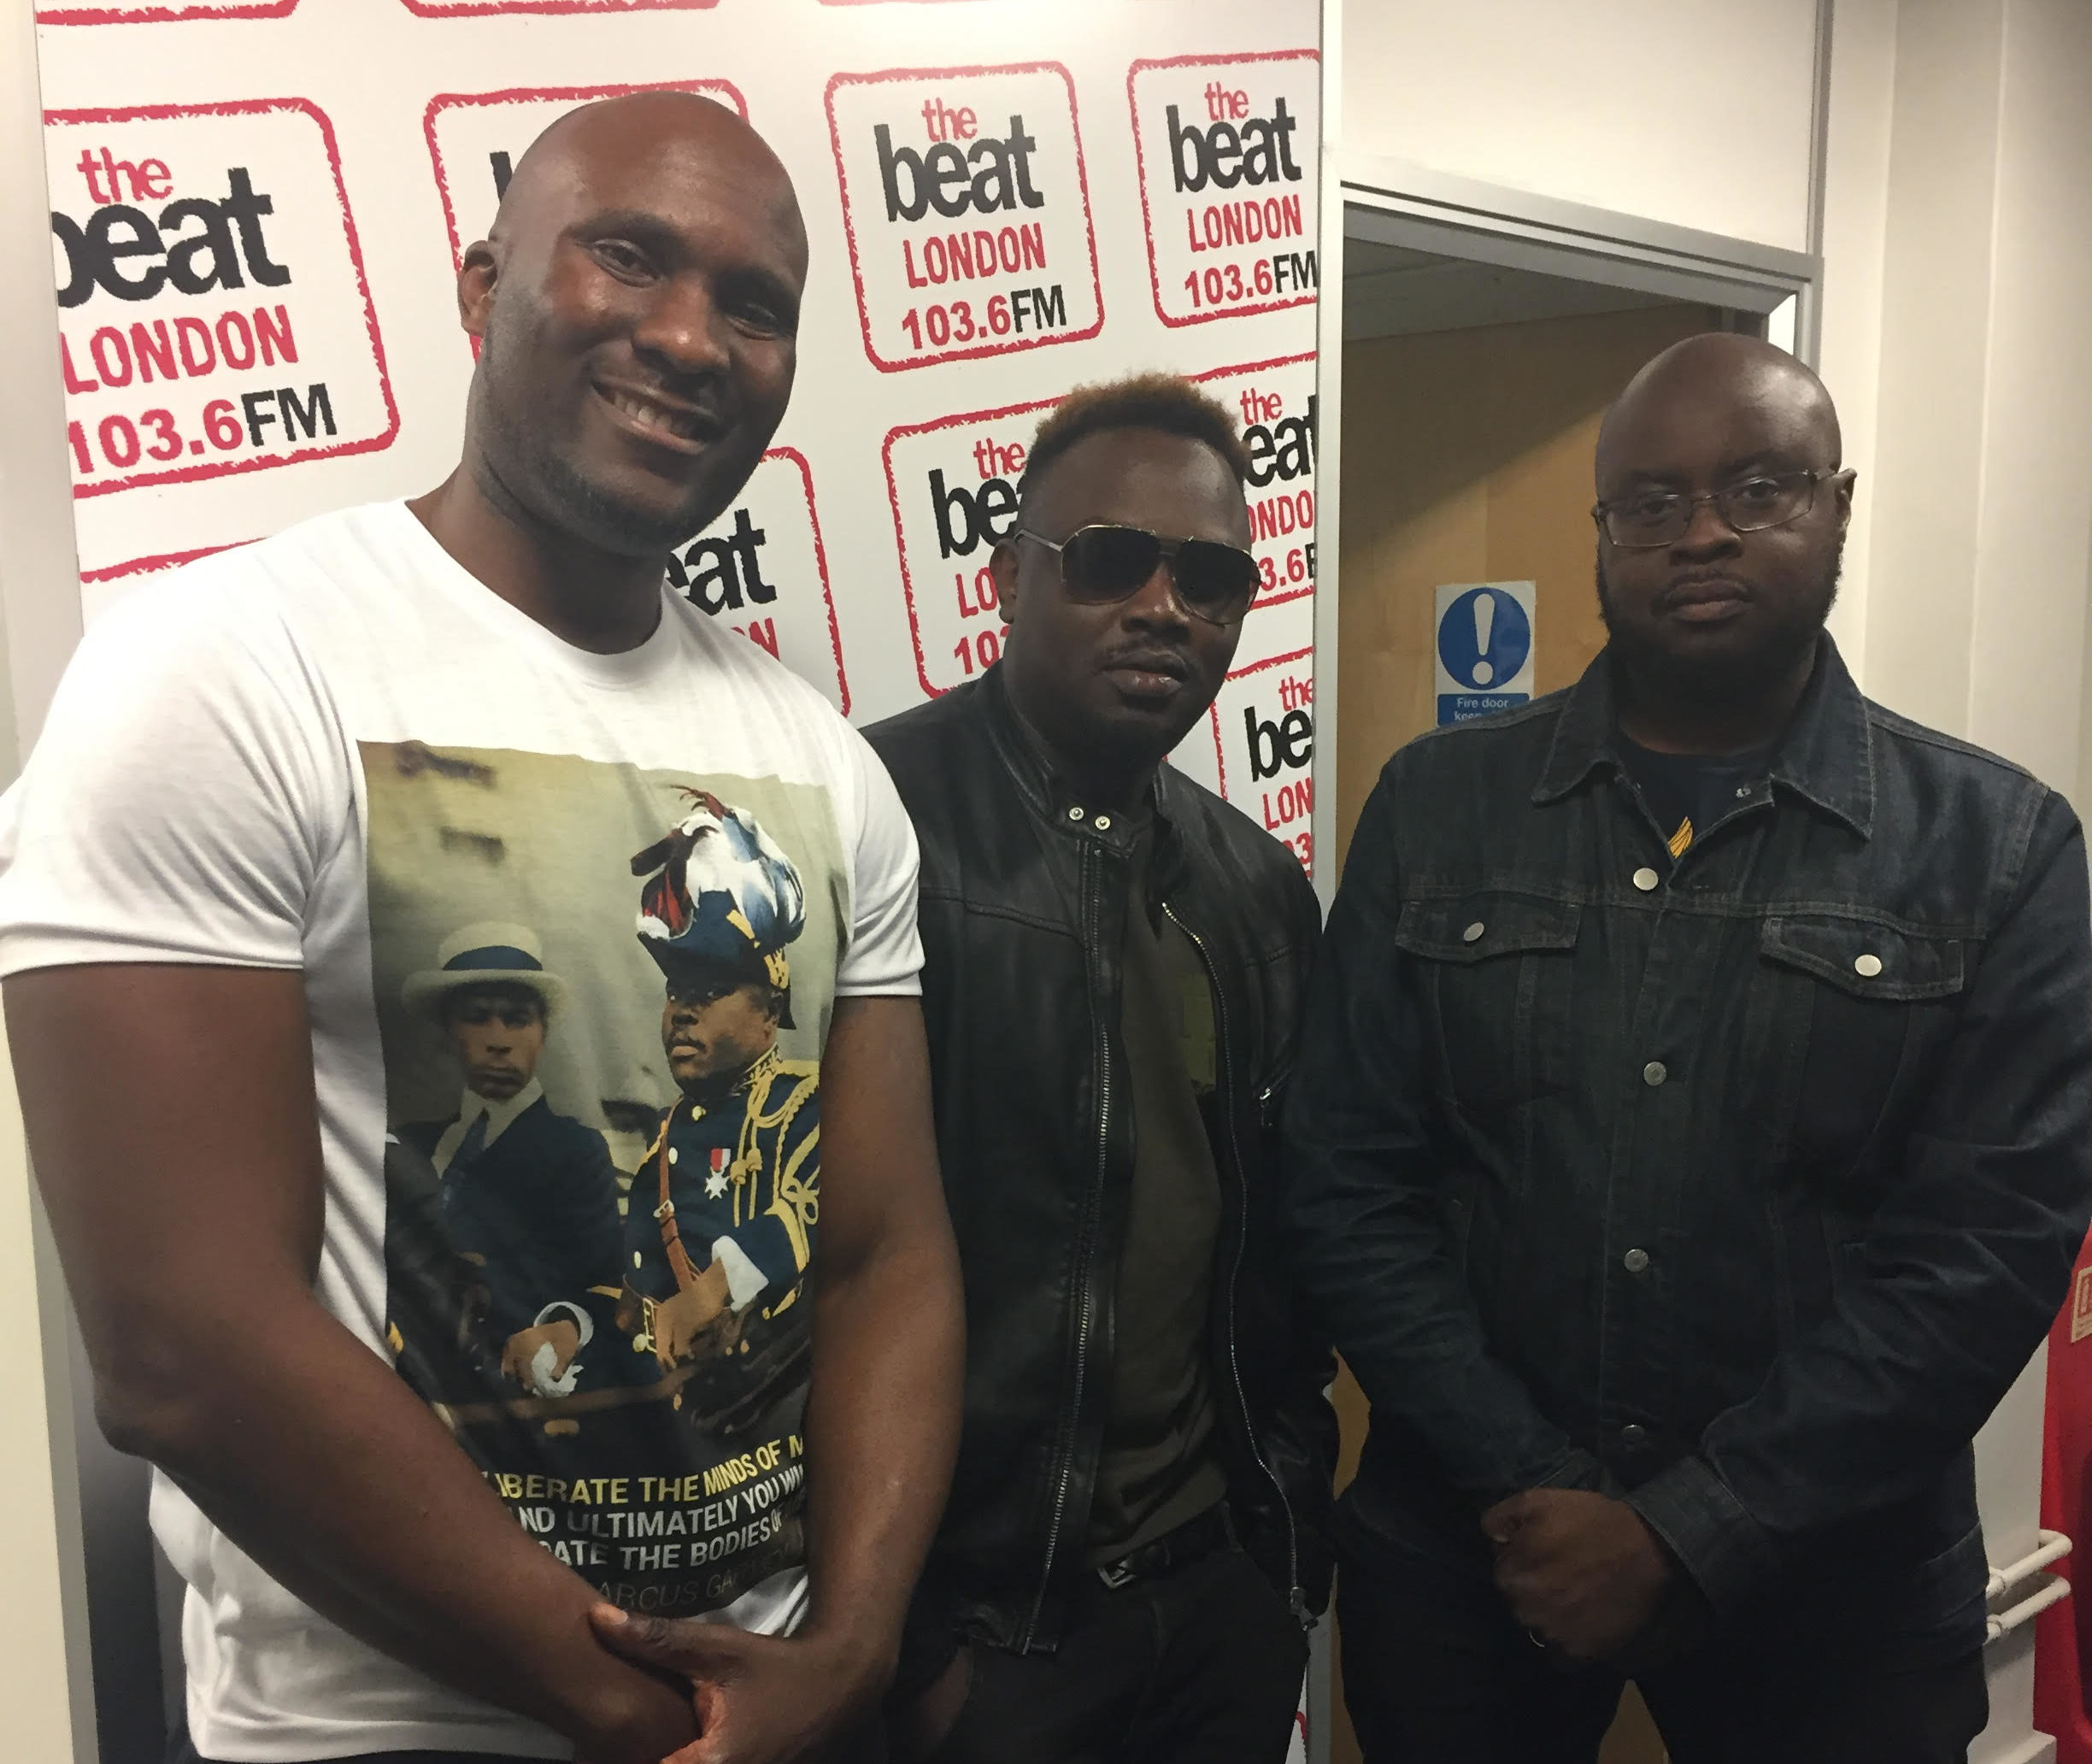 Afrohits On The Beat London, 103.6FM Featuring Dr Sid (22/09/16)